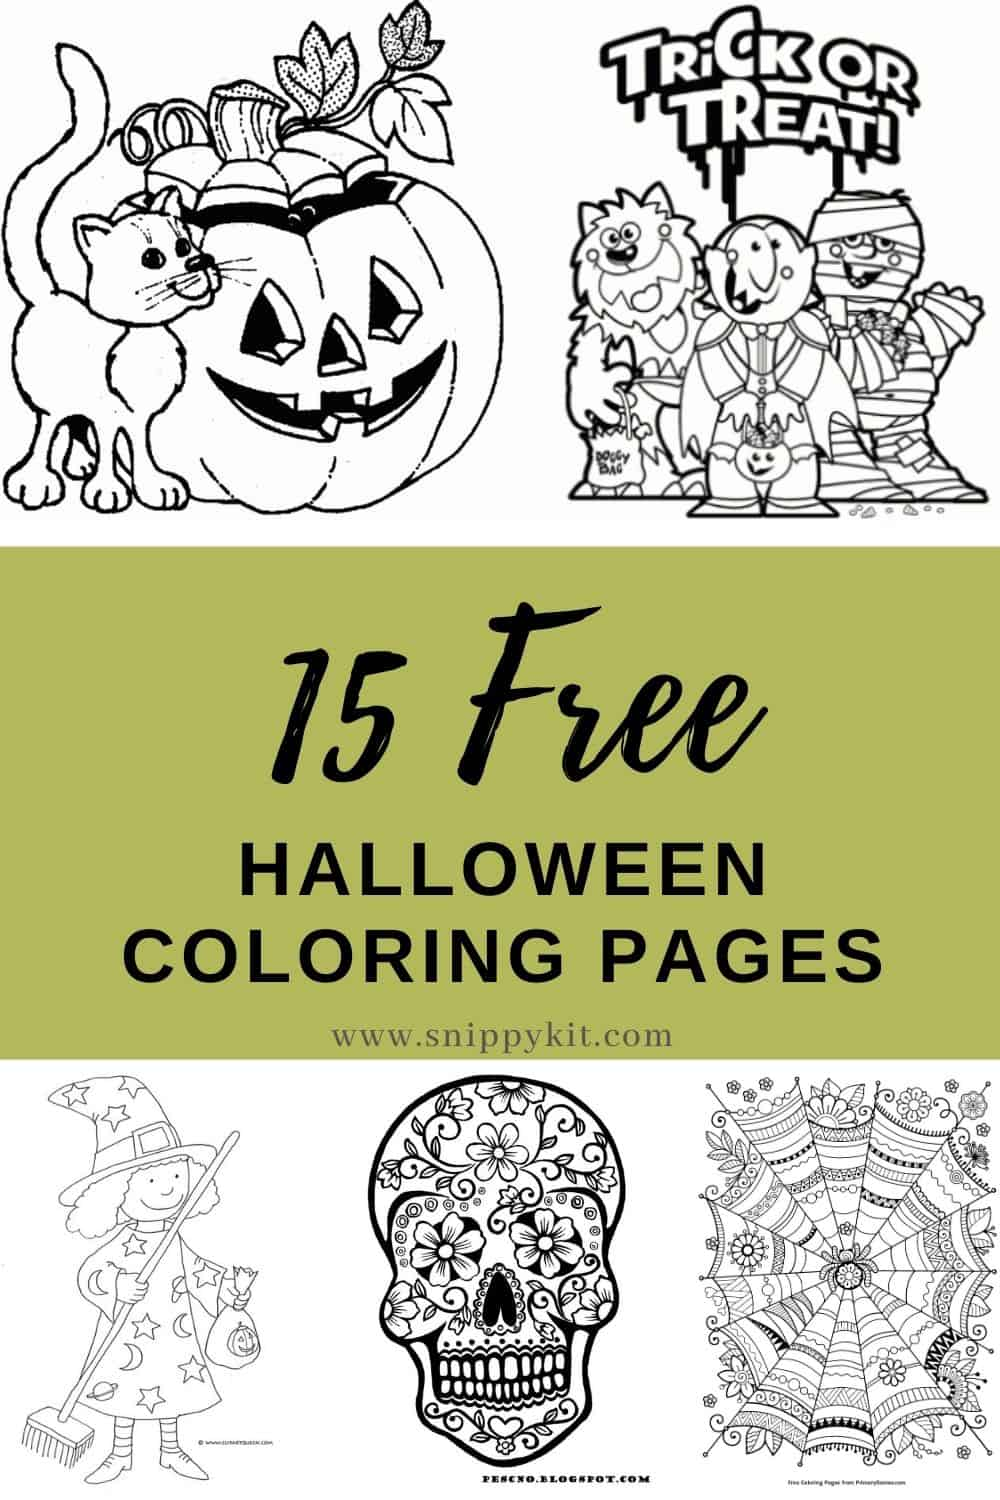 Stay happy and relax with free Halloween coloring pages - with over 15 printables there's bound to be something they'll love!